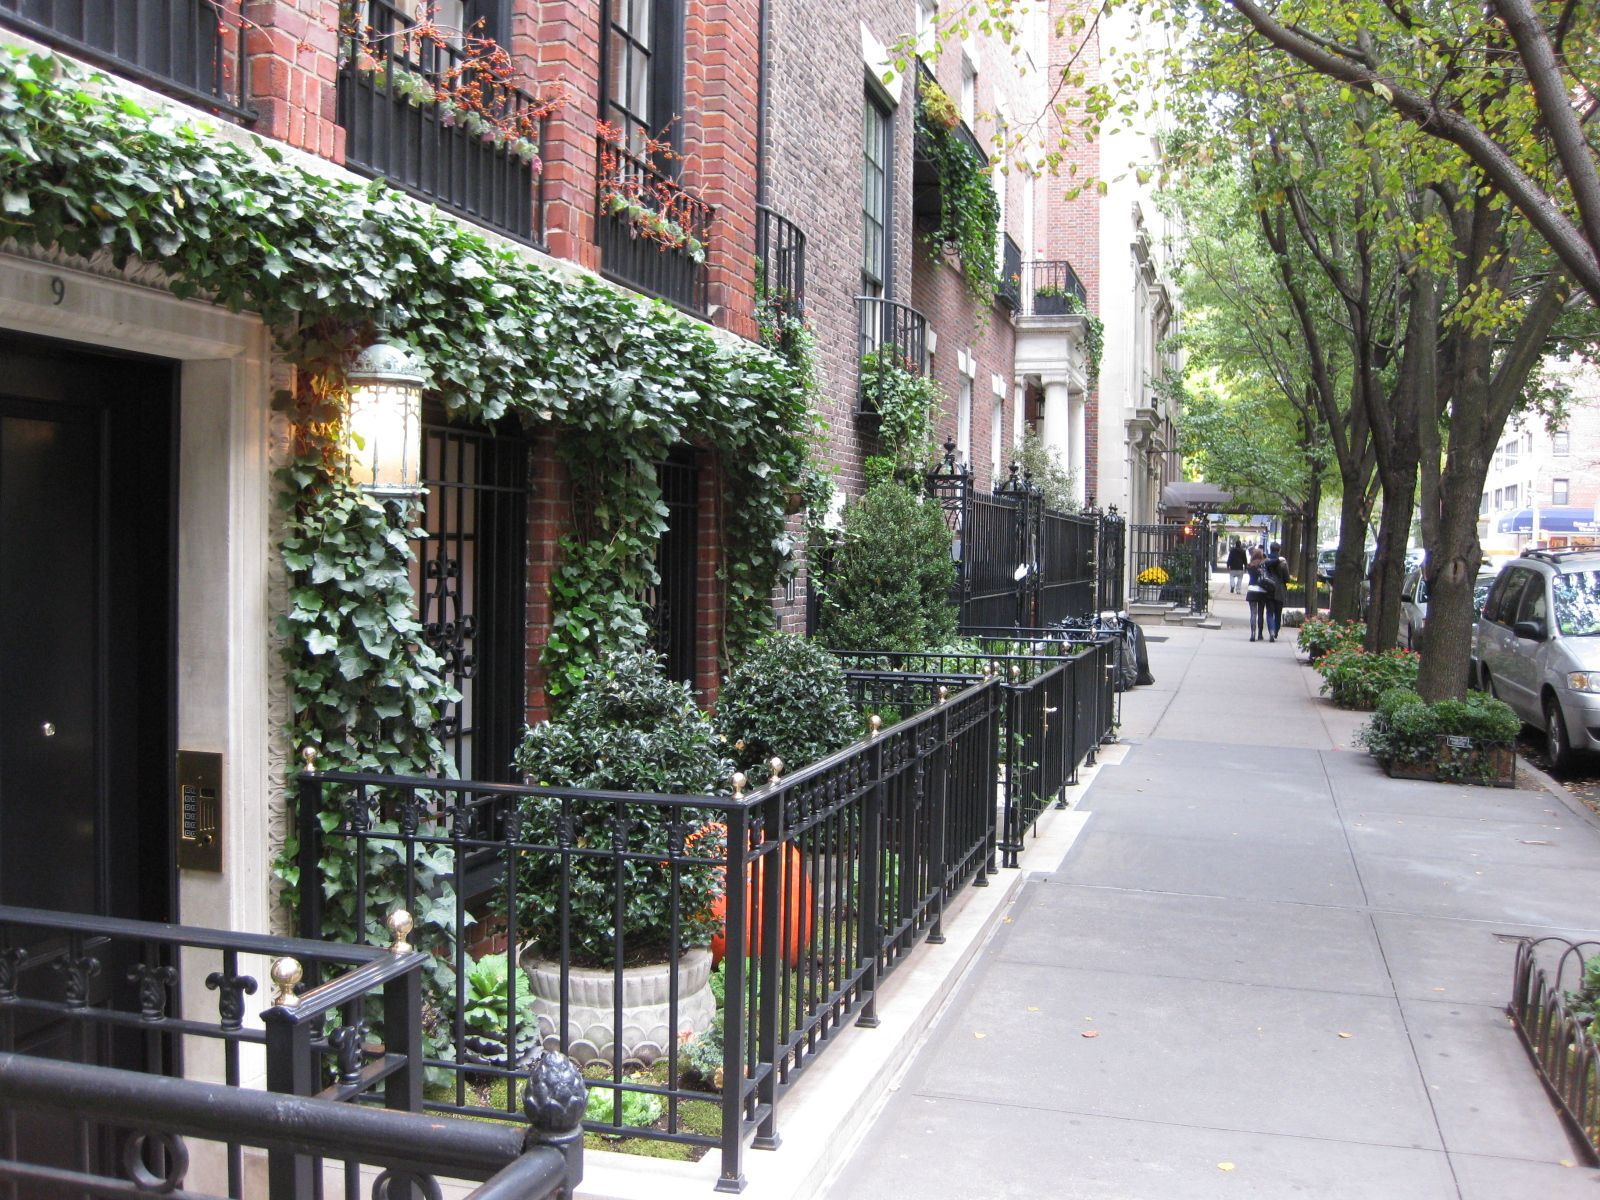 Princess Fights Ouster from RentControlled Upper East